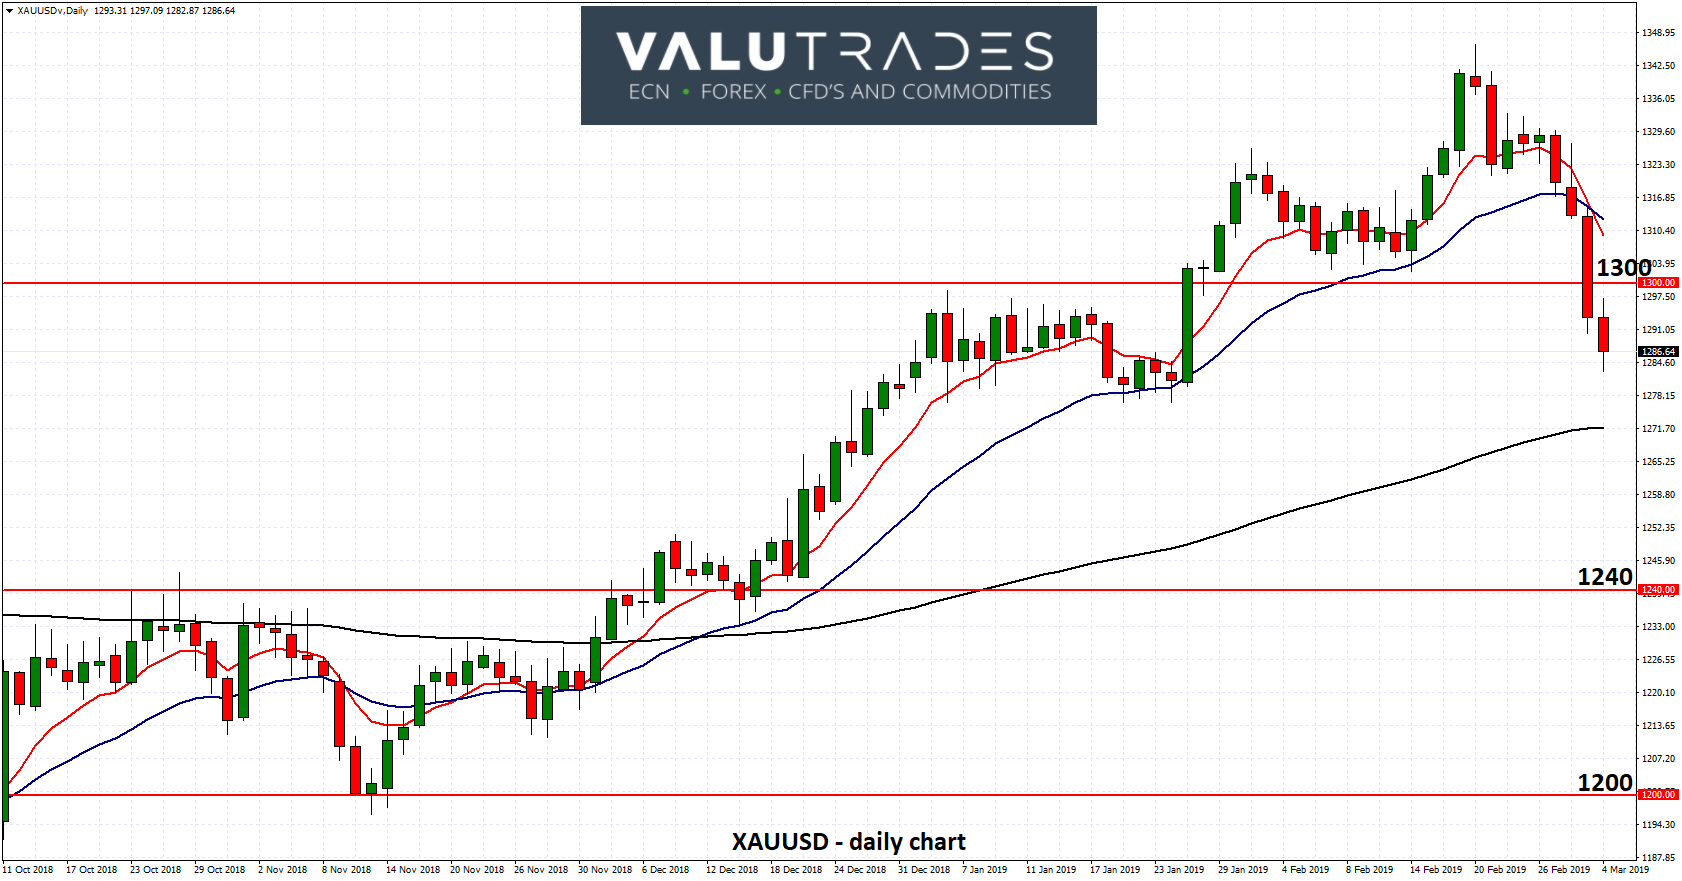 XAUUSD - Falls Sharply to Six Week Low as Trade Talks Enter Final Stages